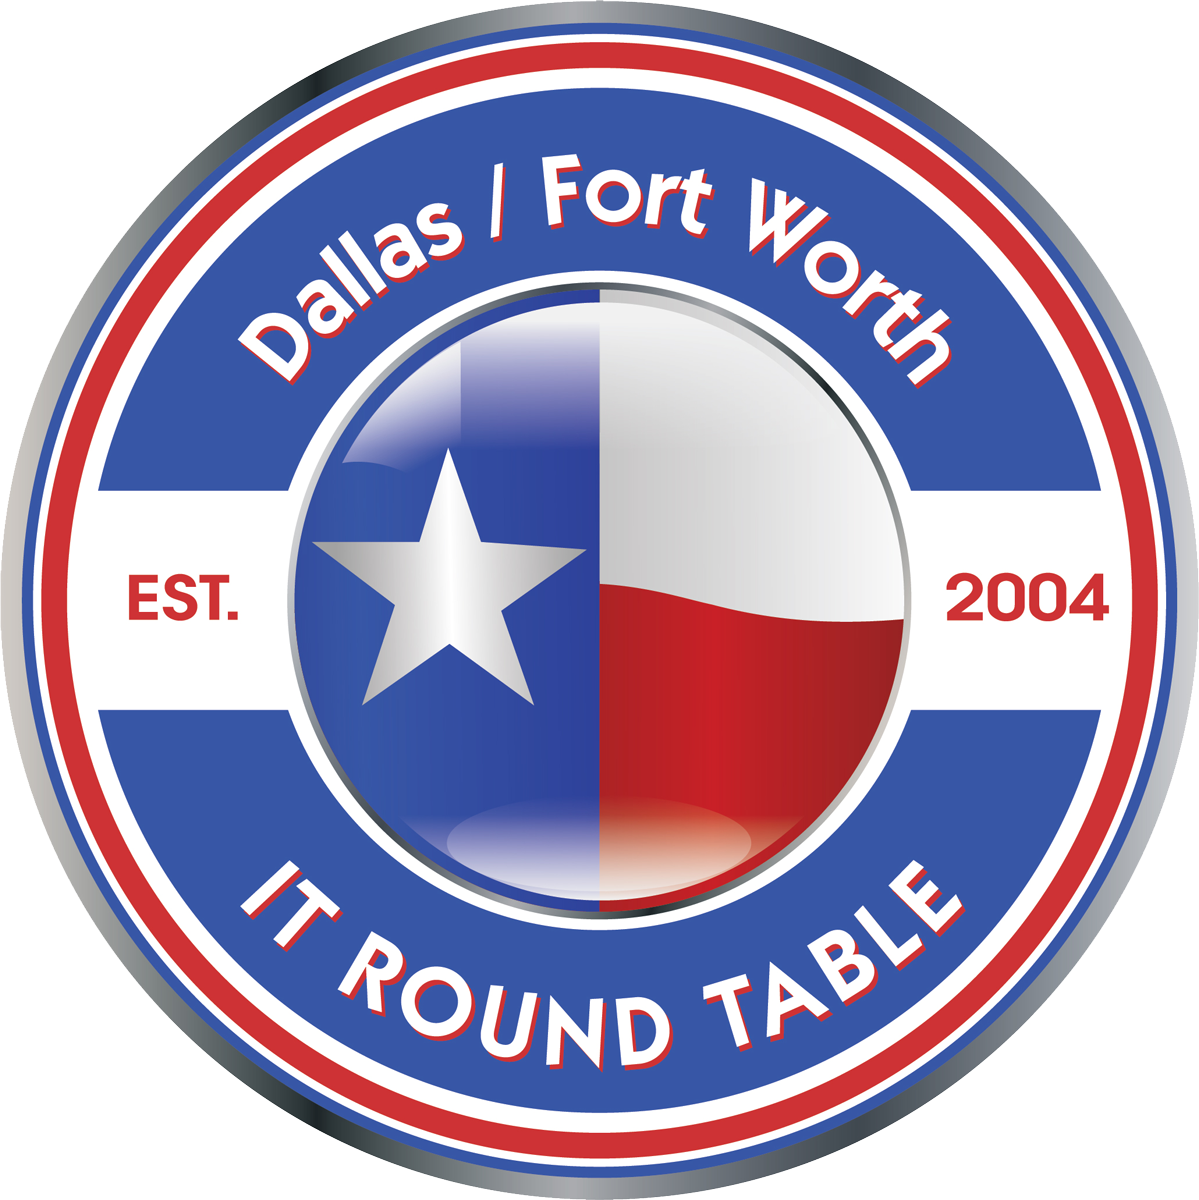 Dallas IT Roundtable